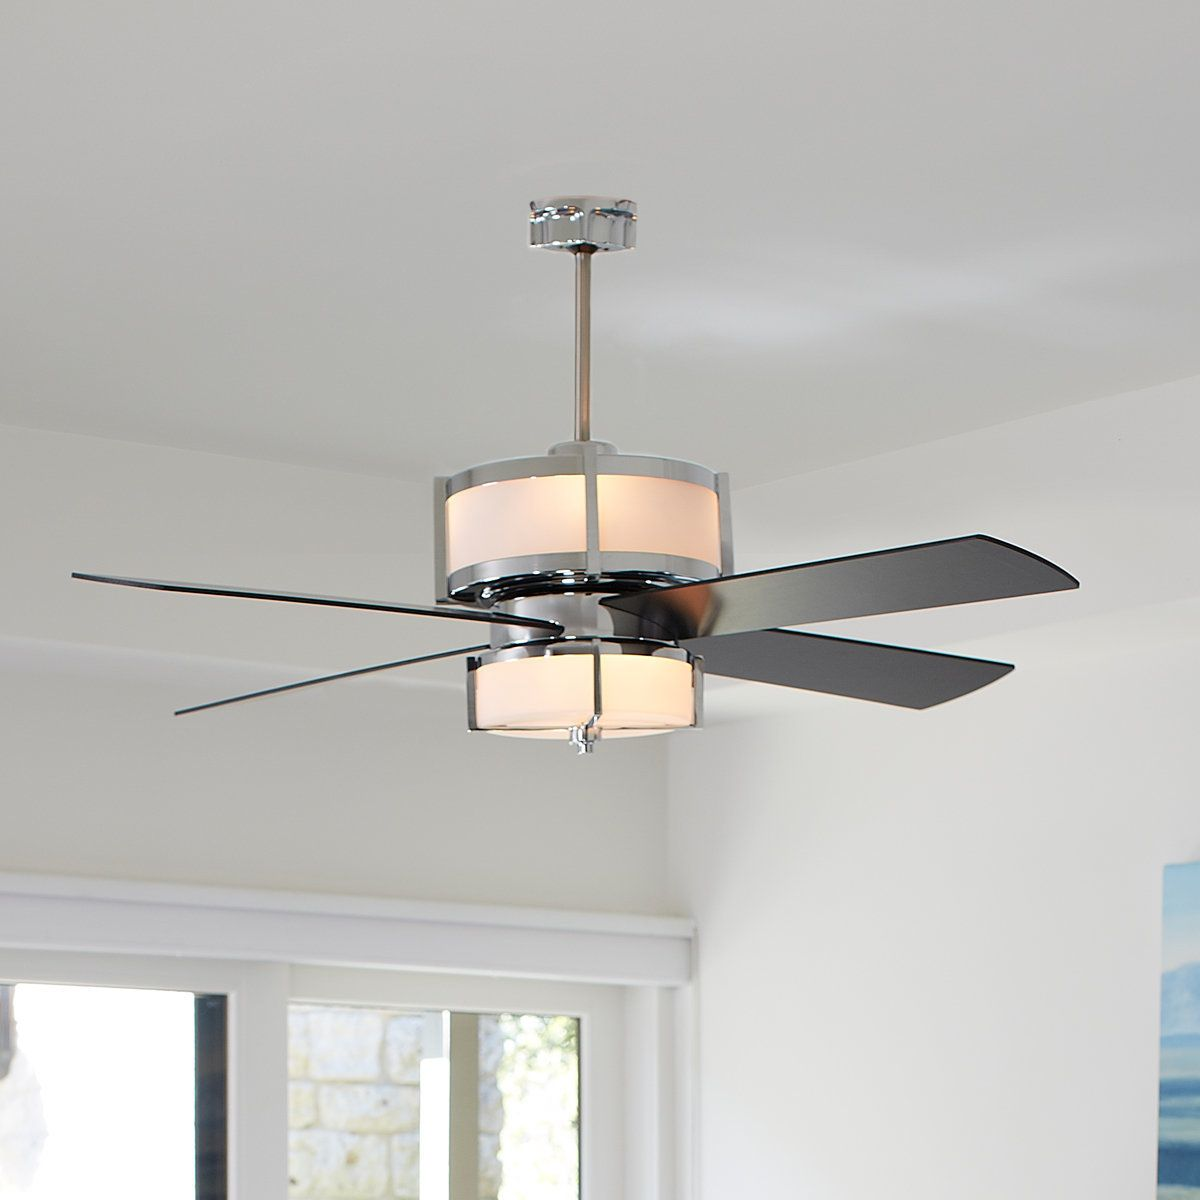 Modern Fan With Lighting Ideas For Contemporary Bedroom: Upscale Modern Ceiling Fan Black